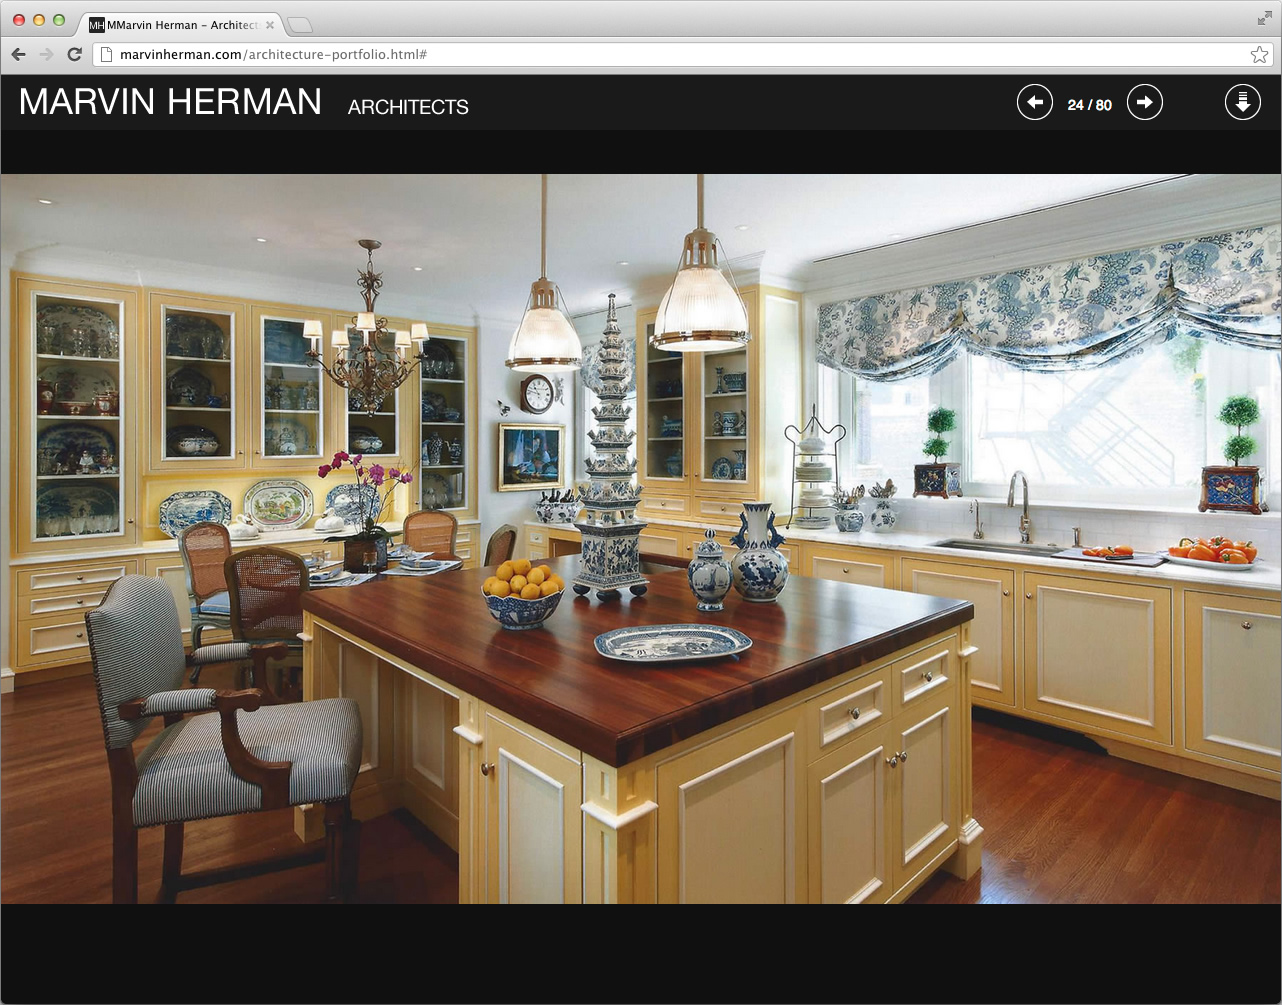 Marvin Herman Website